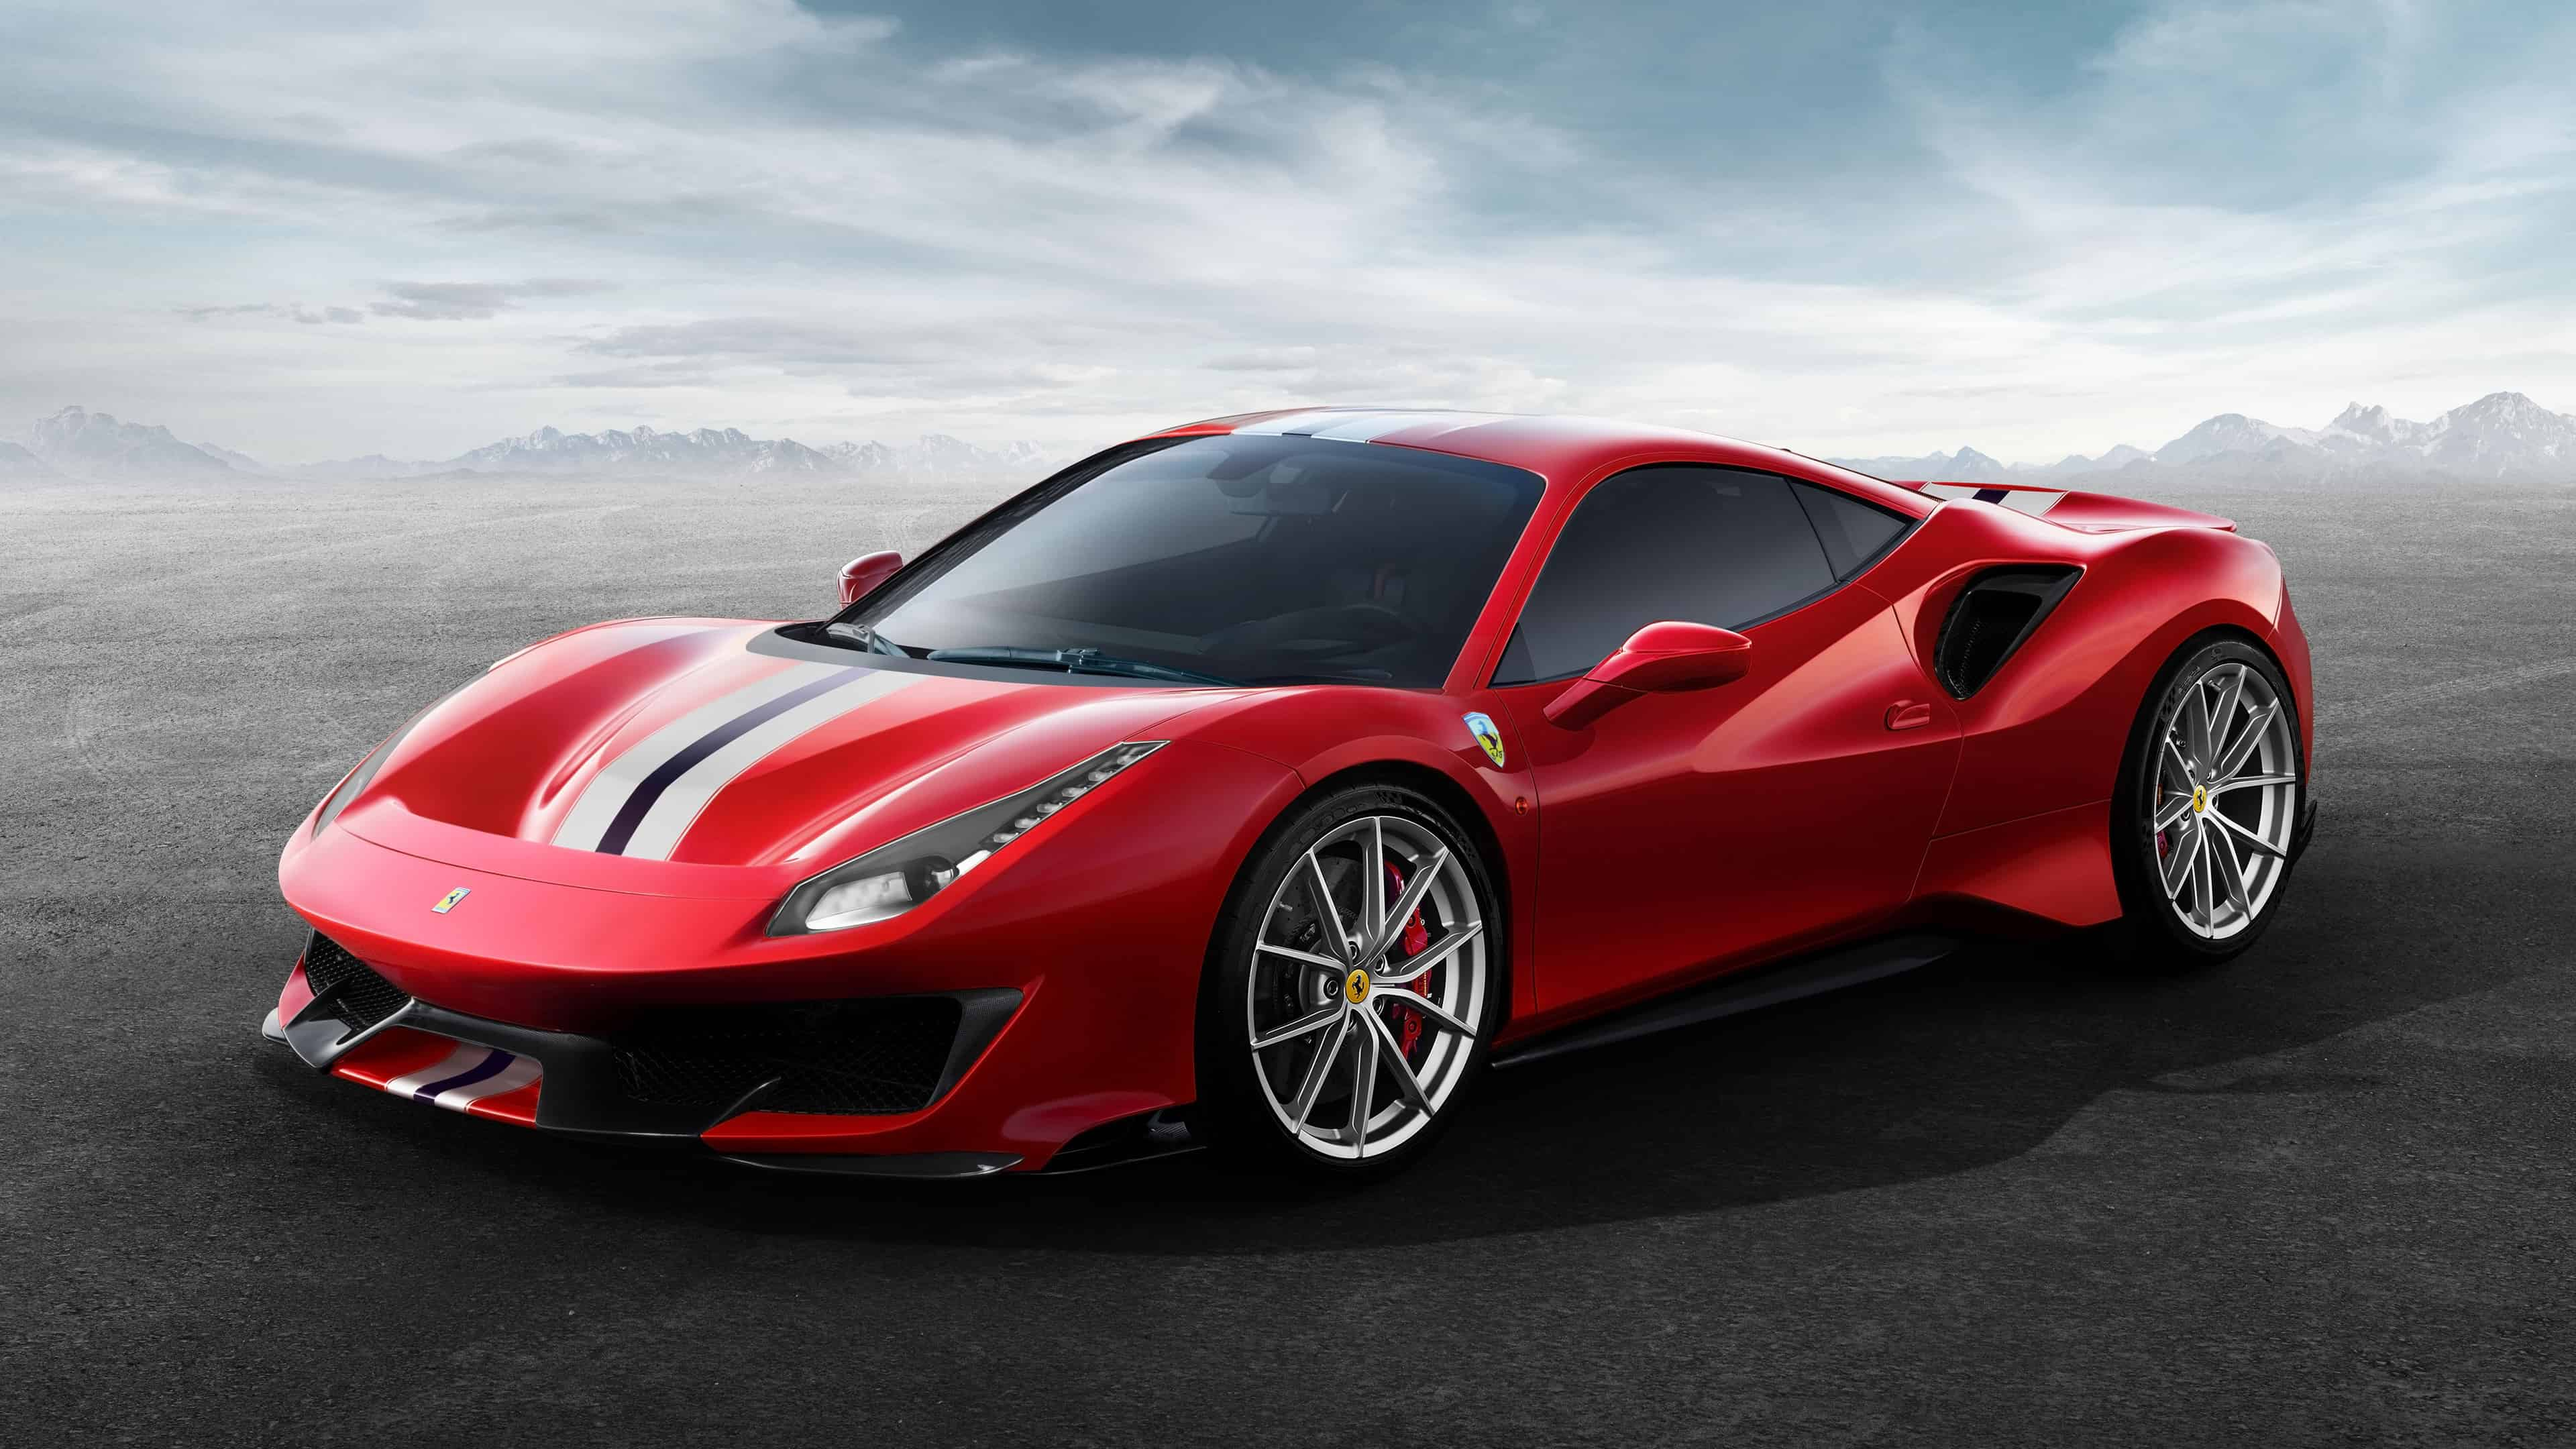 Ferrari 488 Pista Red Uhd 4k Wallpaper Pixelz